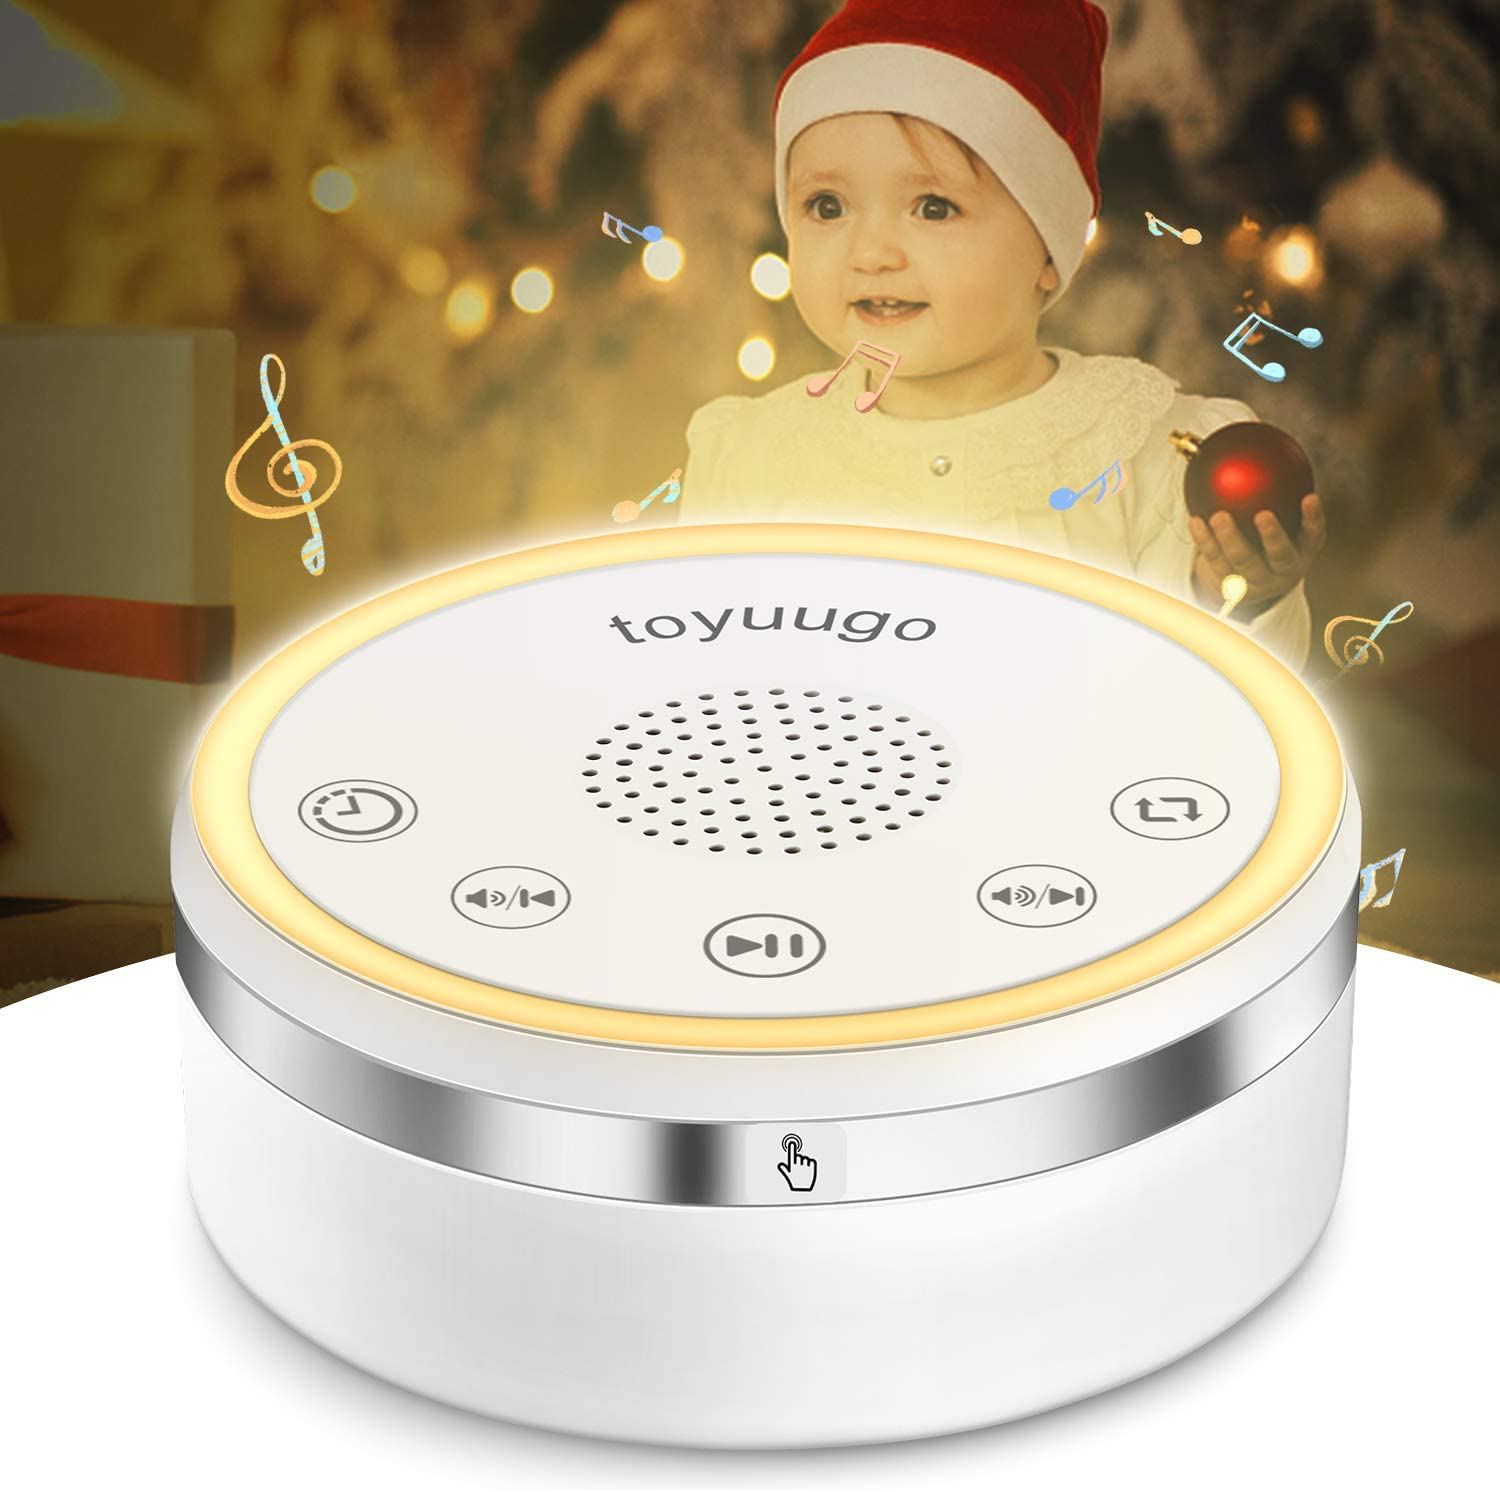 White Noise Machine,toyuugo Glows Sound Machine,attery or Adapter Charging Options Relaxation - Sleep Machine, Soothing Sounds & Auto-Off Timer Timer Sleep Therapy for Nursery, Home,Office,Travel